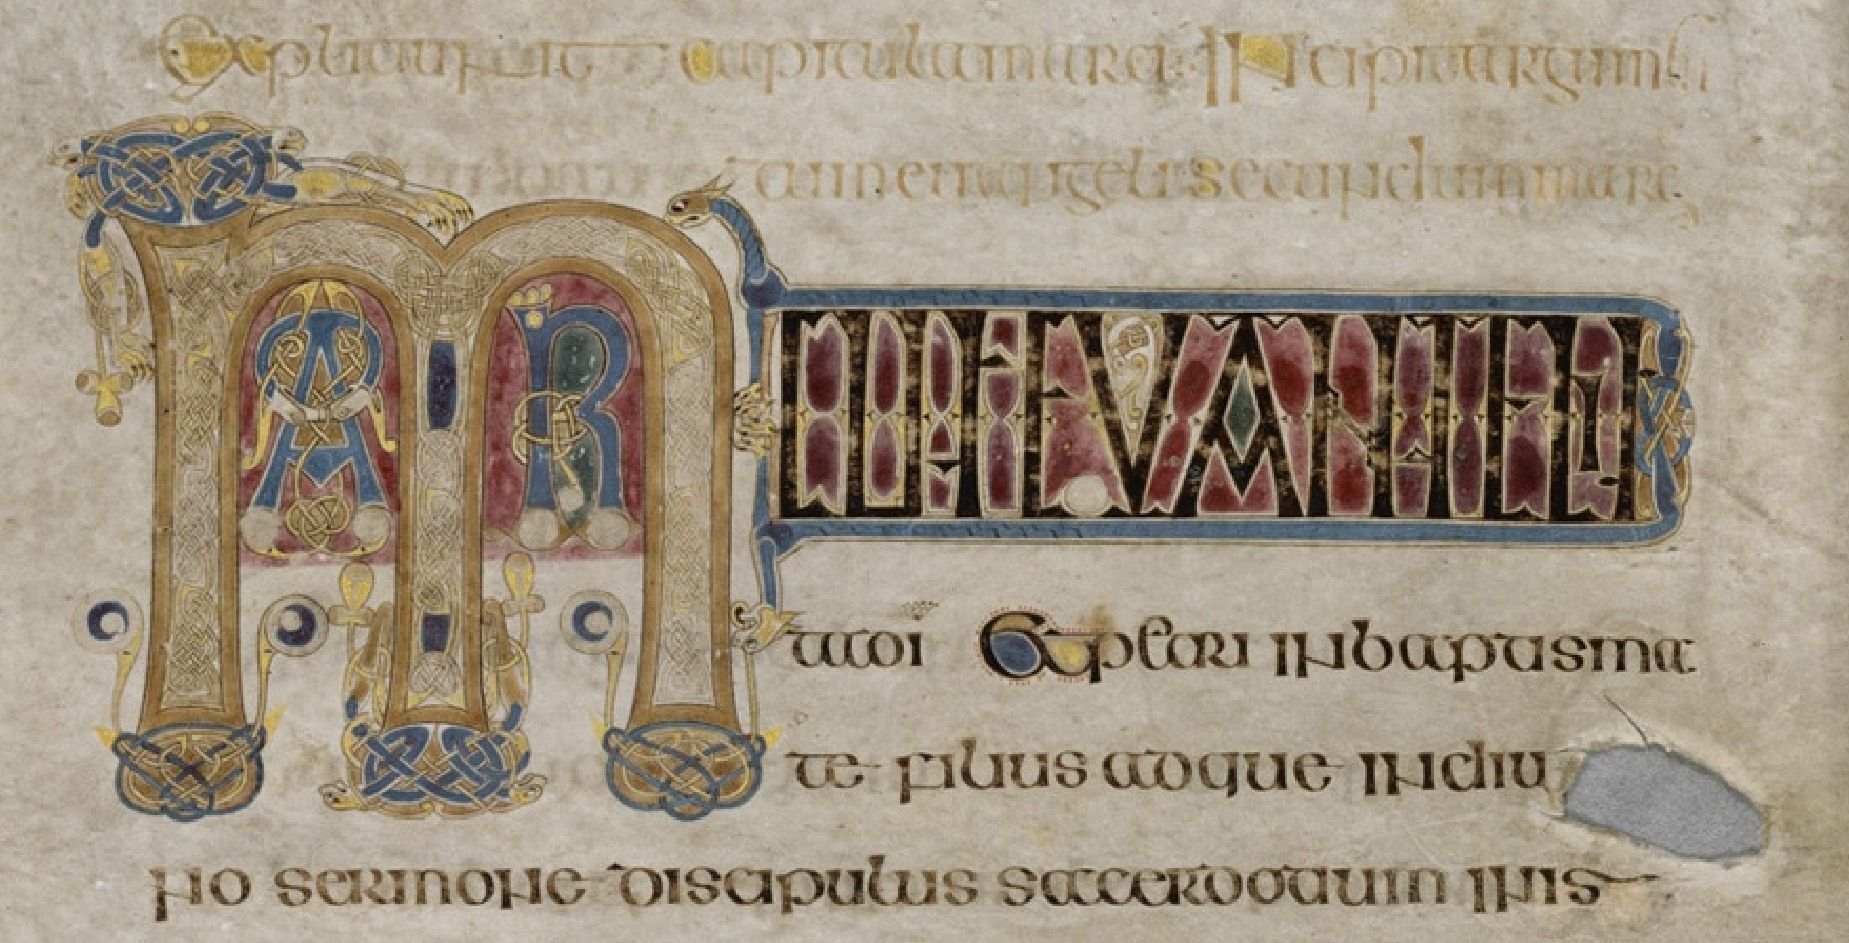 The-Book-Of-Kells-Excerpt-From-Folio-15 | Book Of Kells à Script In The Book Of Kells